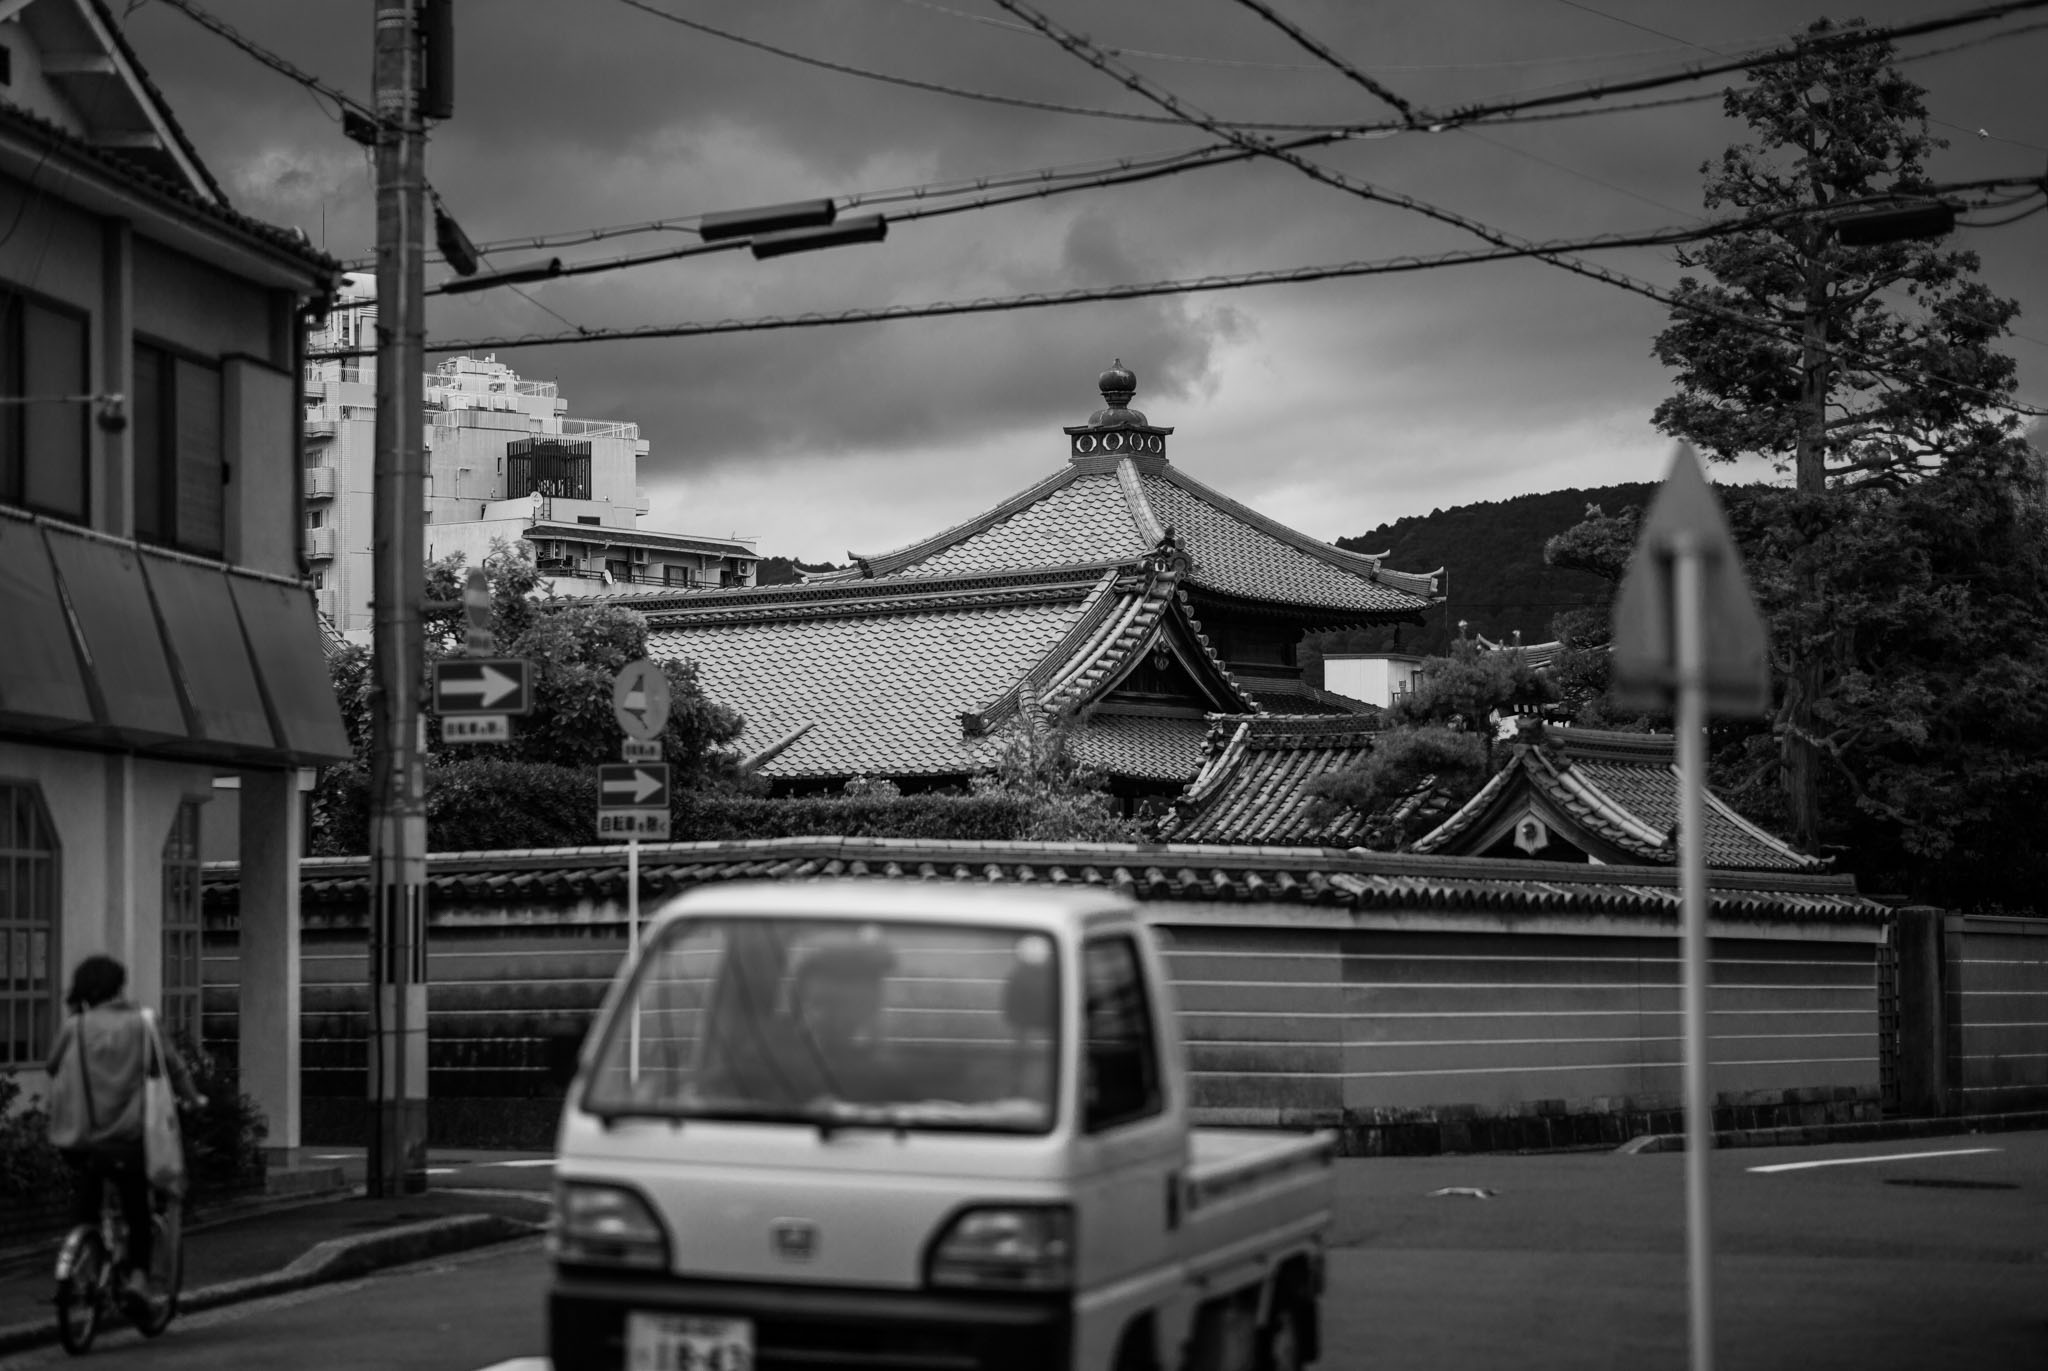 Kyoto-old-and-new.jpg